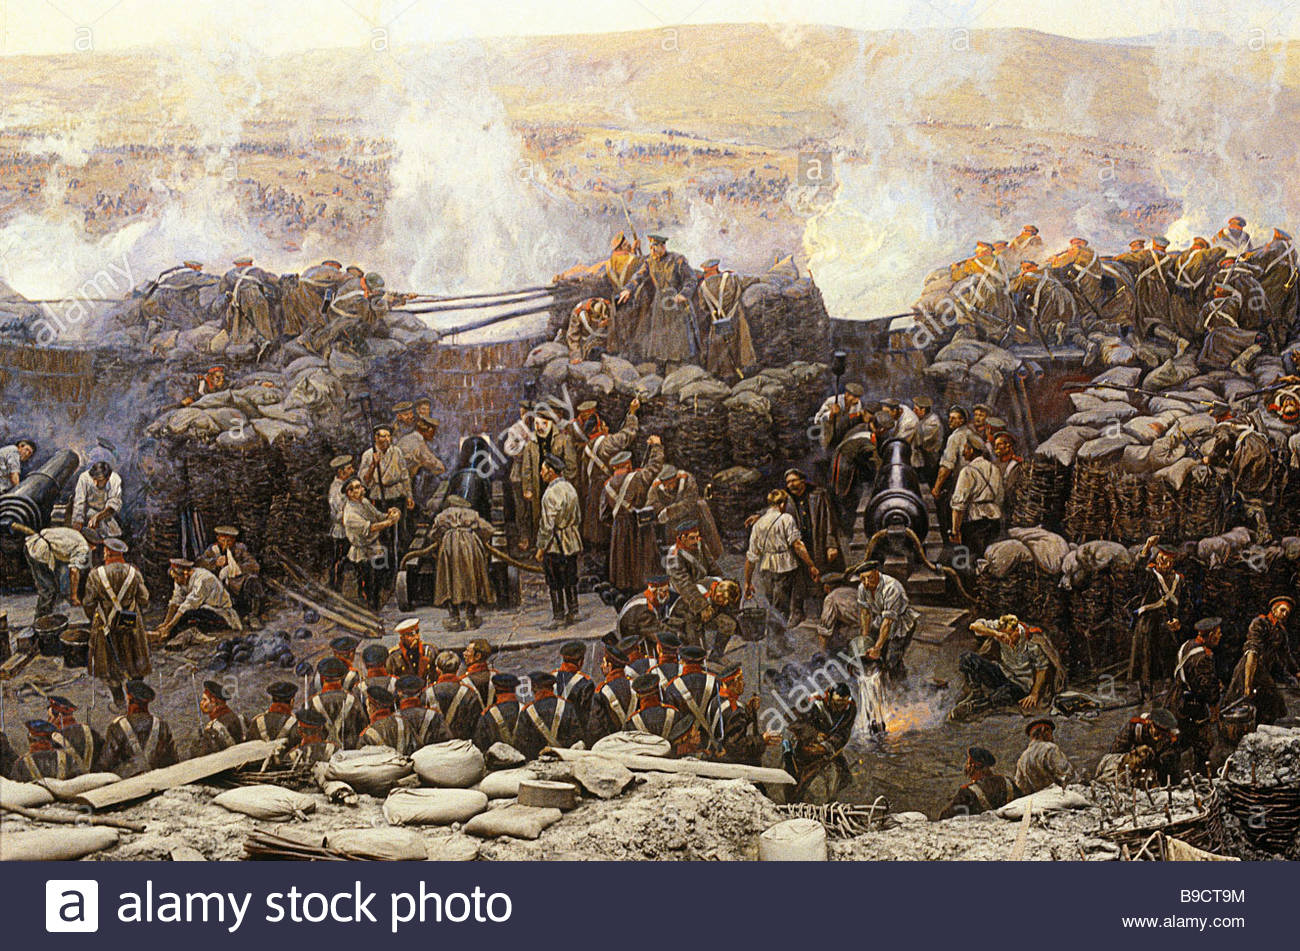 Franz Roubaud Or Rubo 1856 1928 The Defense Of Sevastopol In 1854.